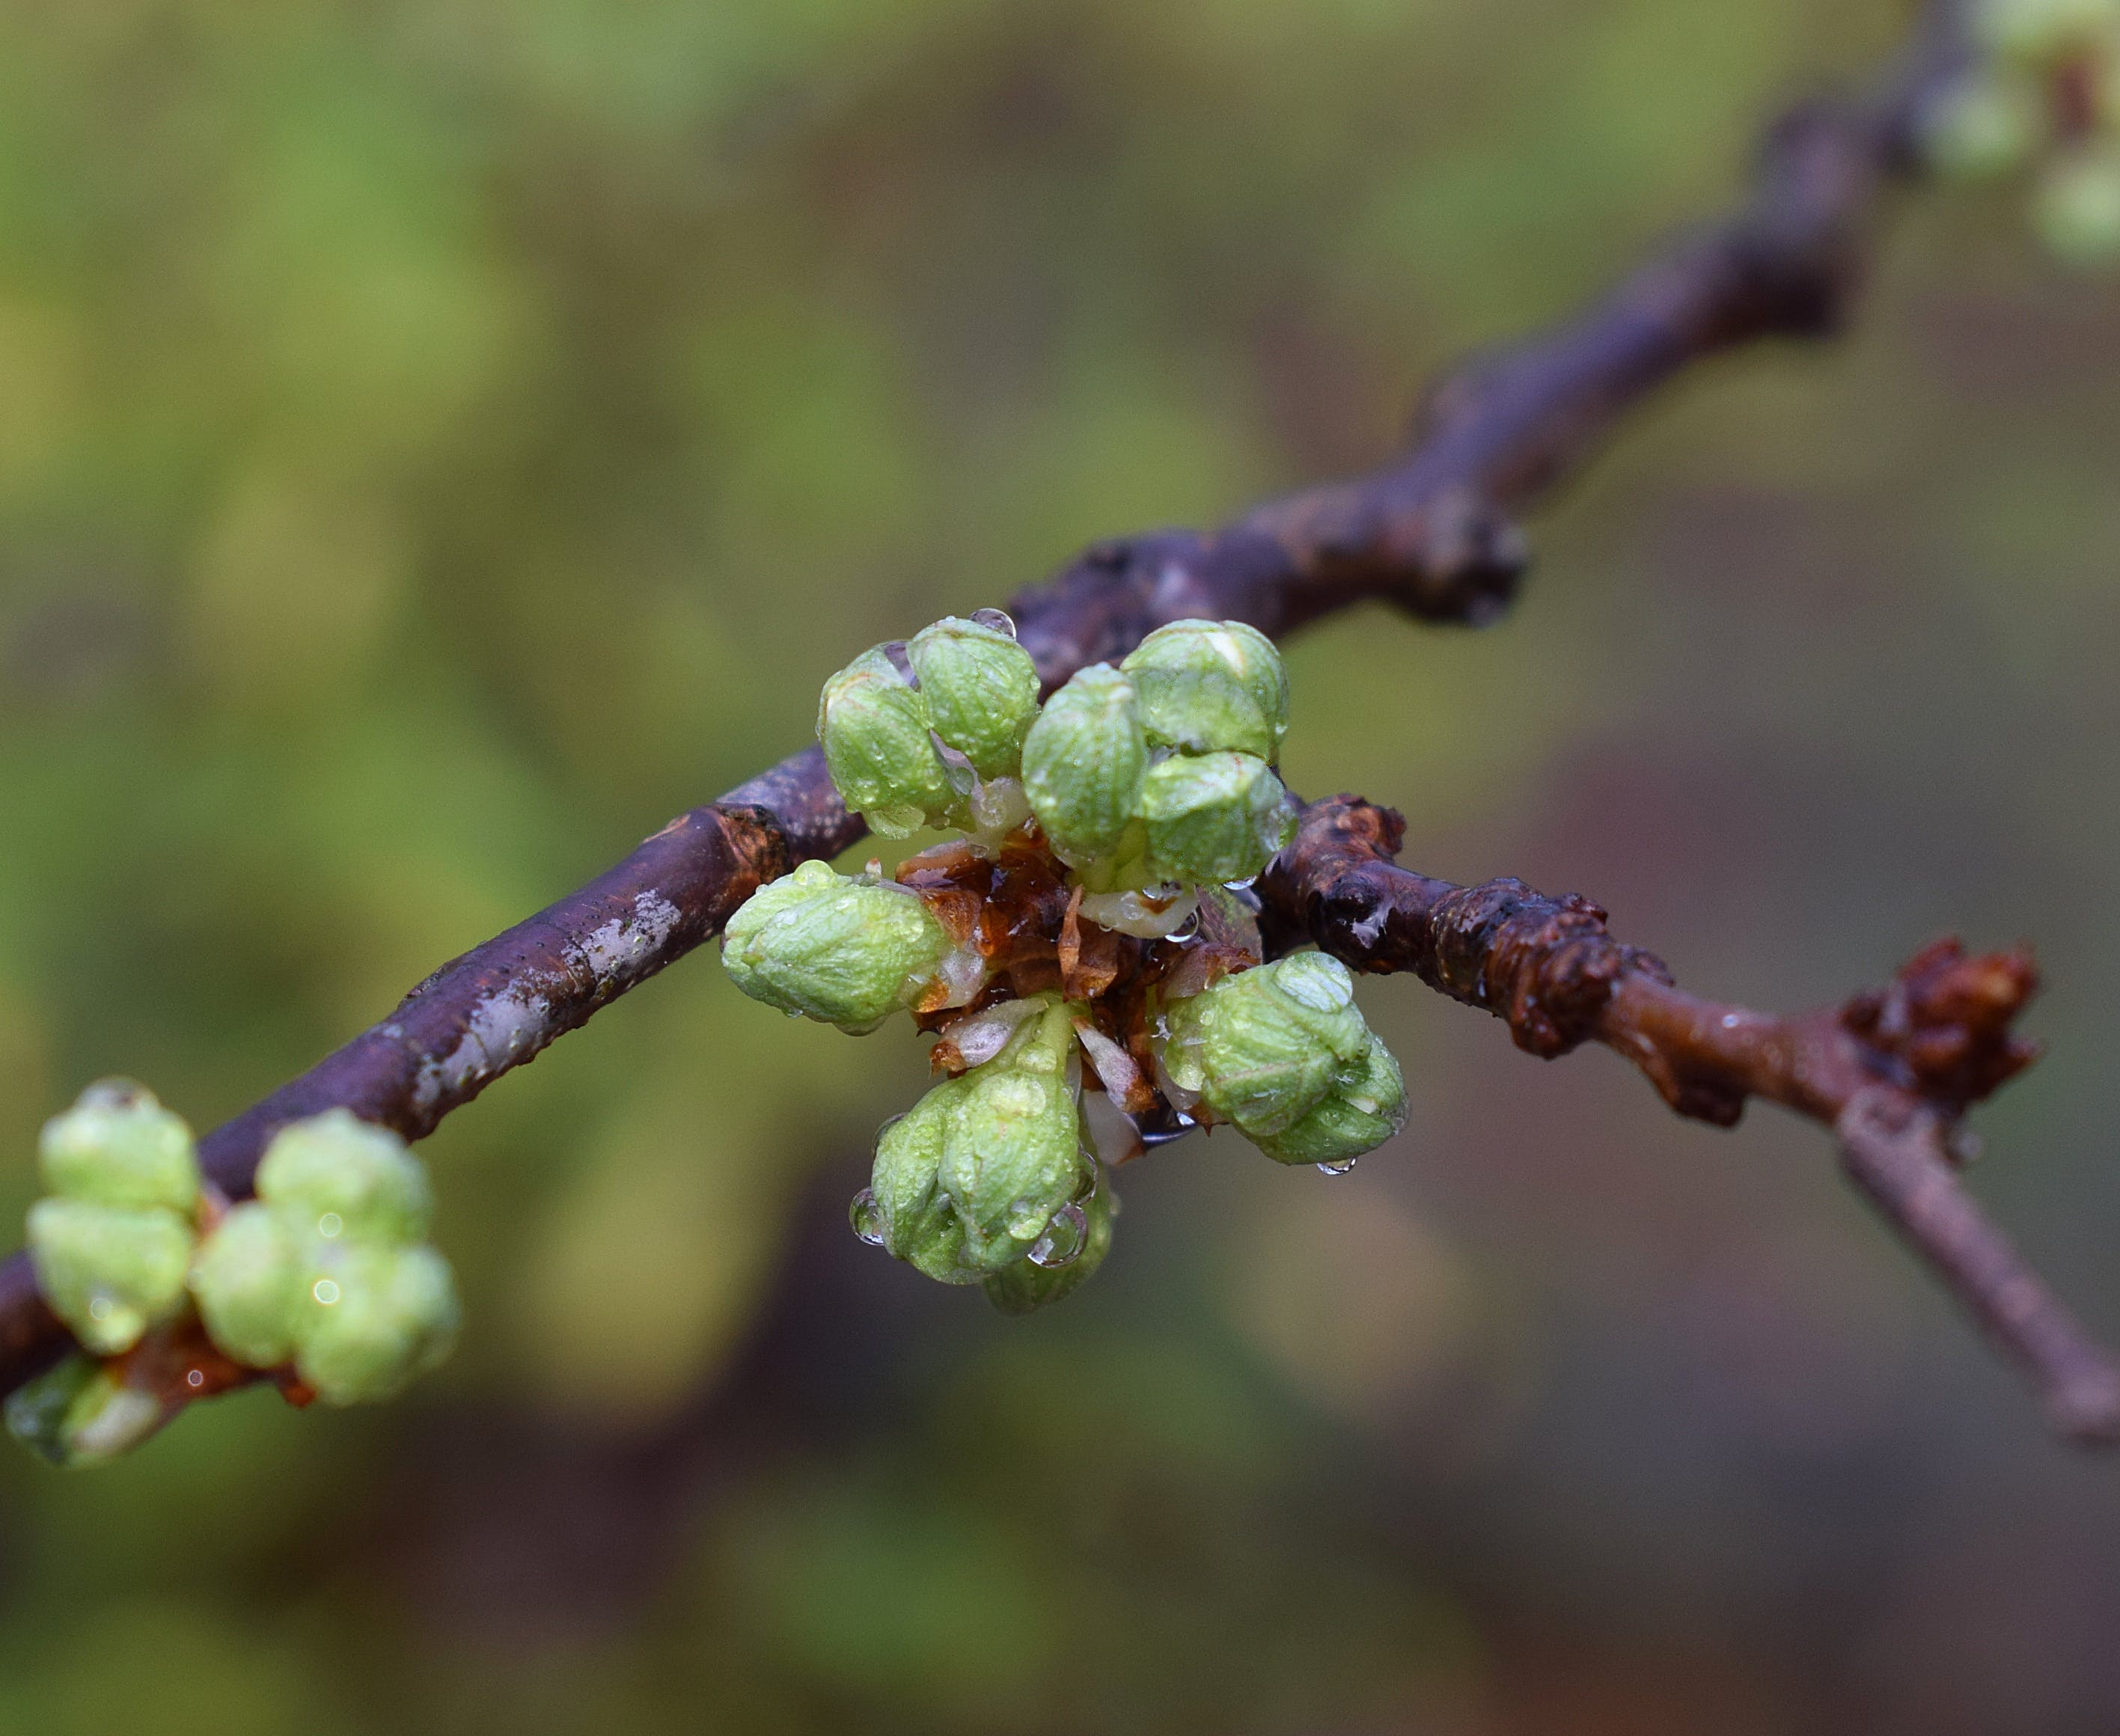 Free stock photo of nature, spring, tree, raindrops